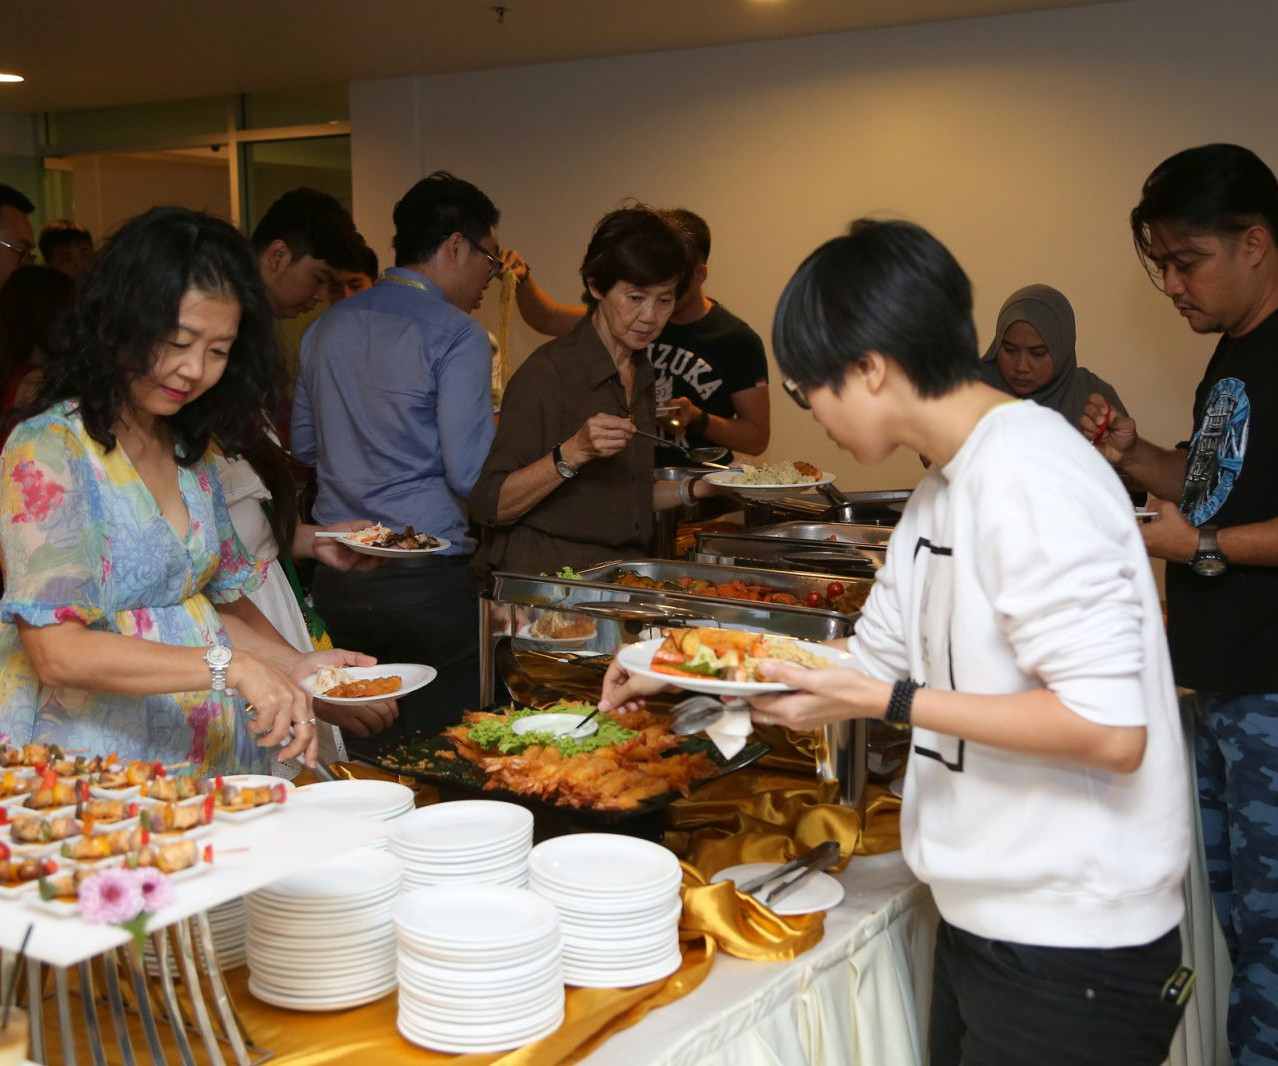 Guests enjoying a sumptuous dinner spread.